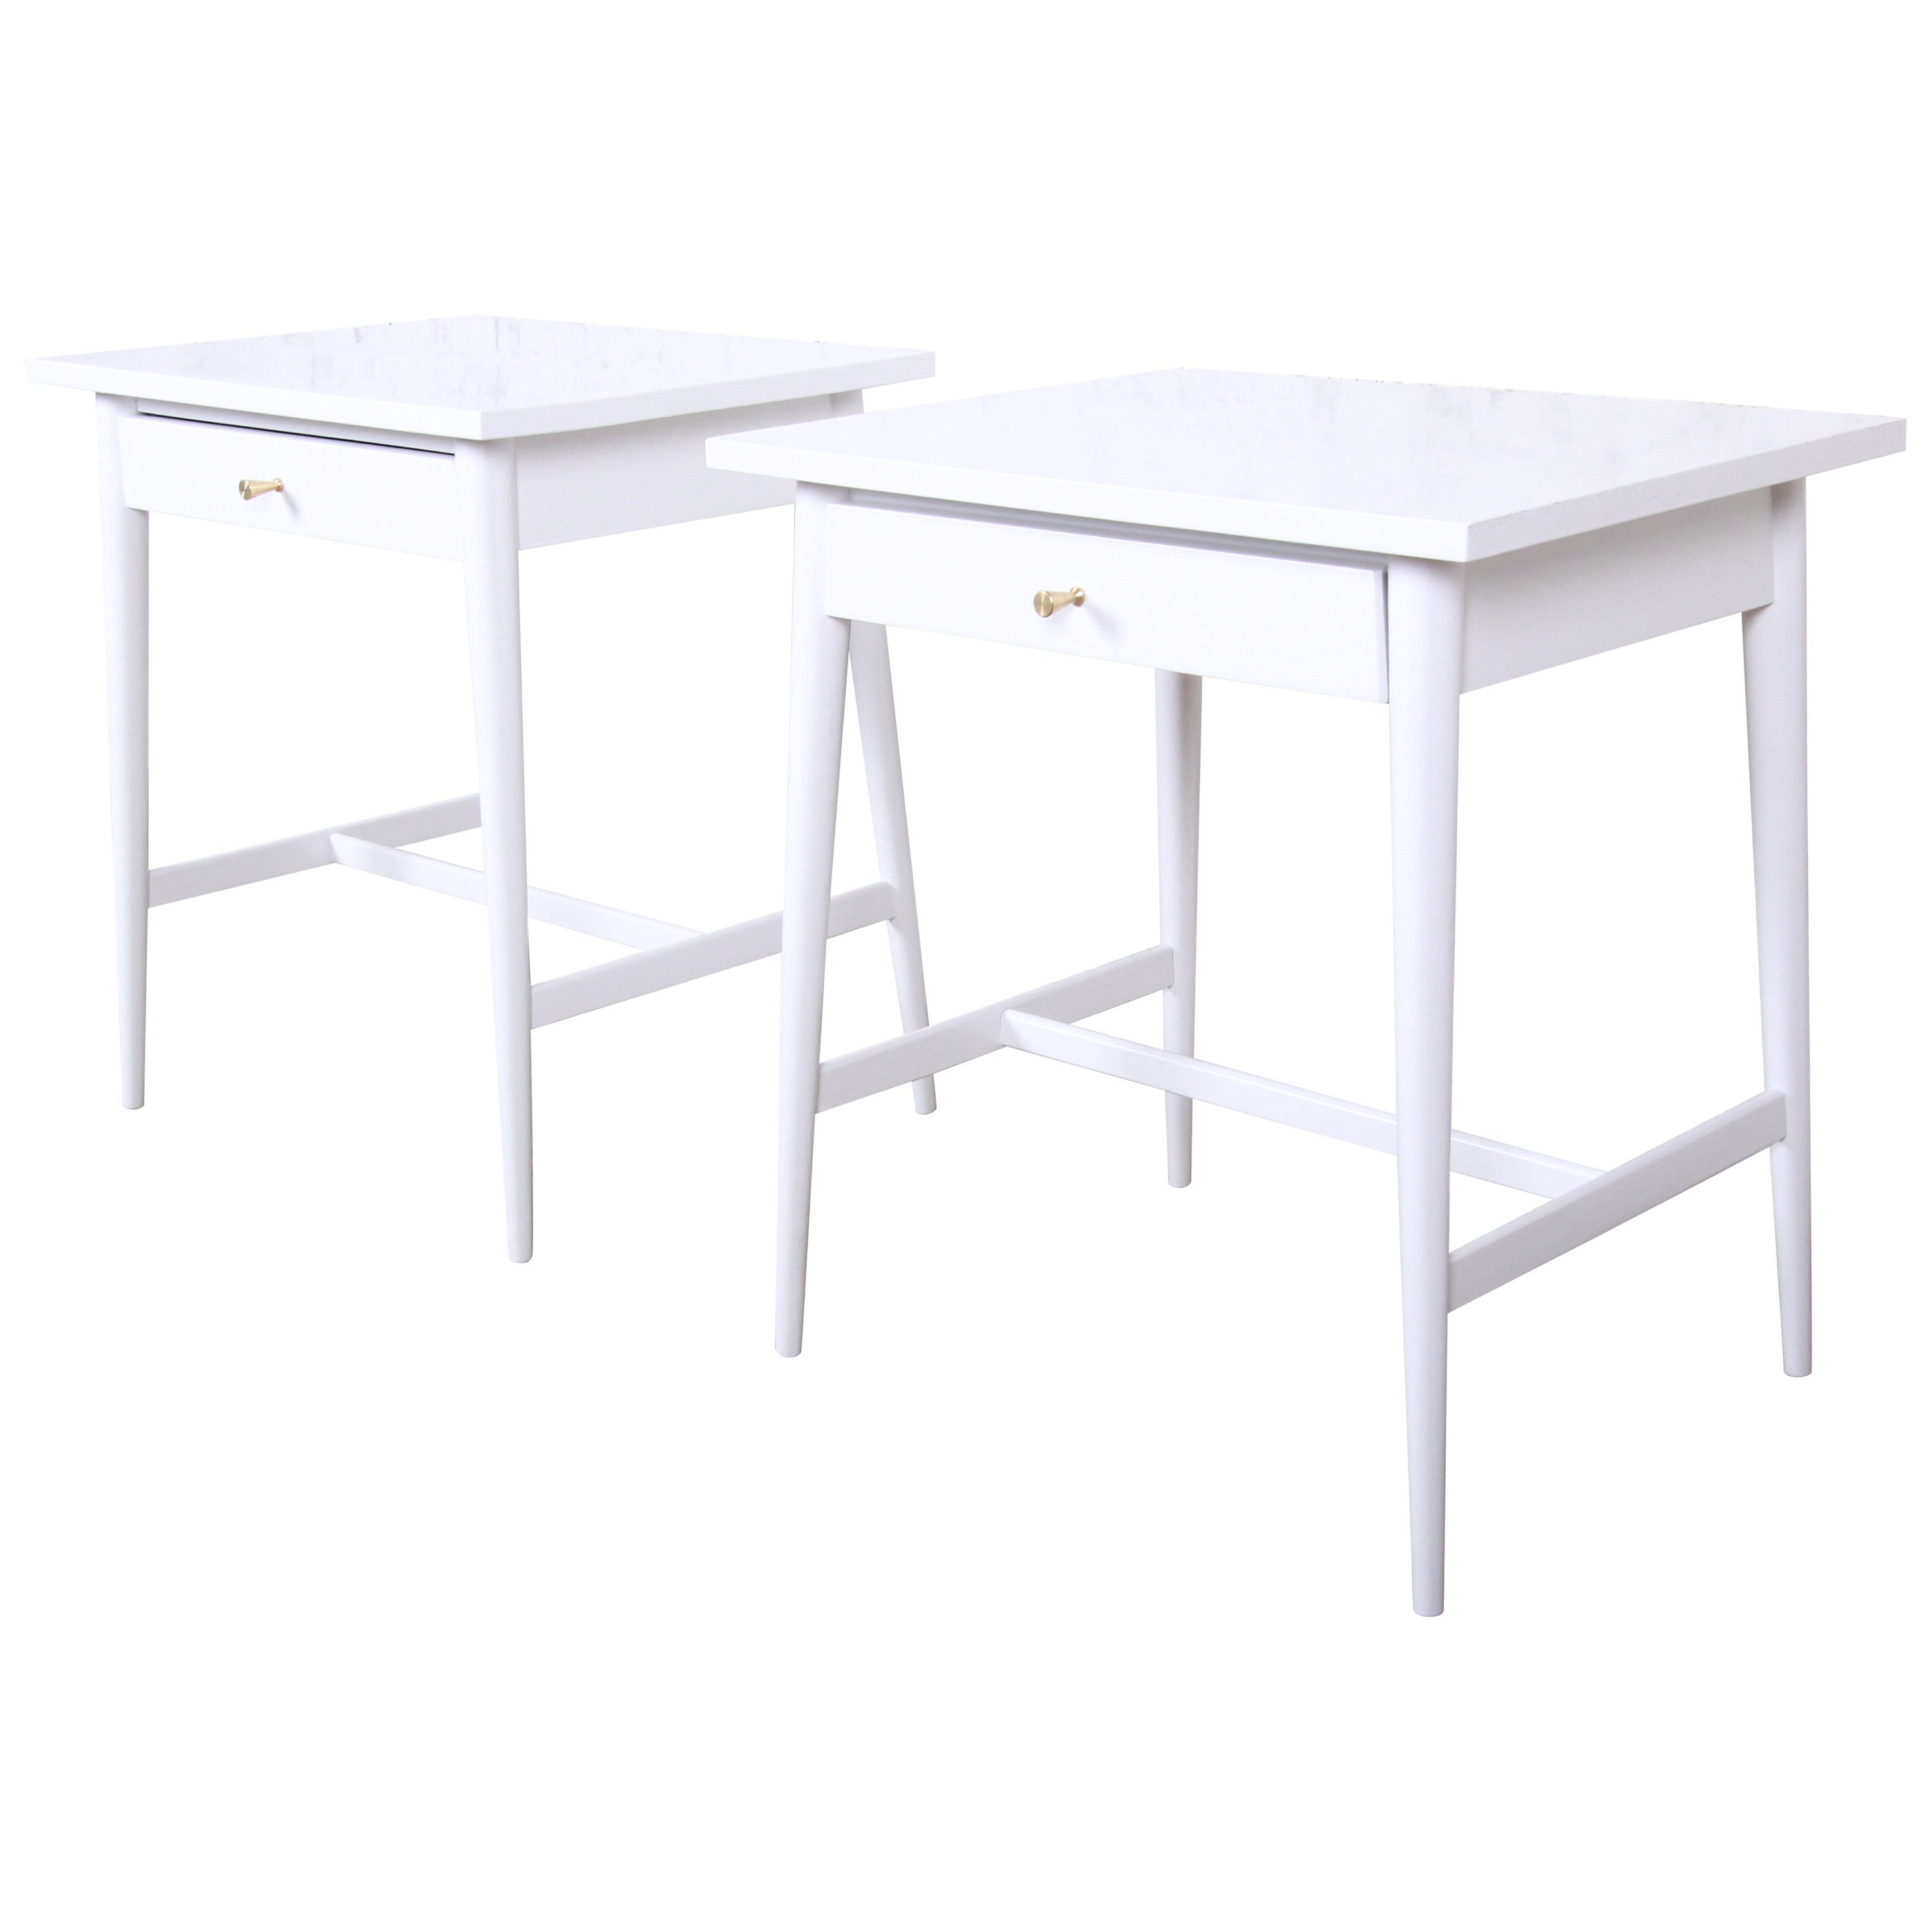 Paul McCobb Planner Group White Lacquered Nightstands, Newly Refinished